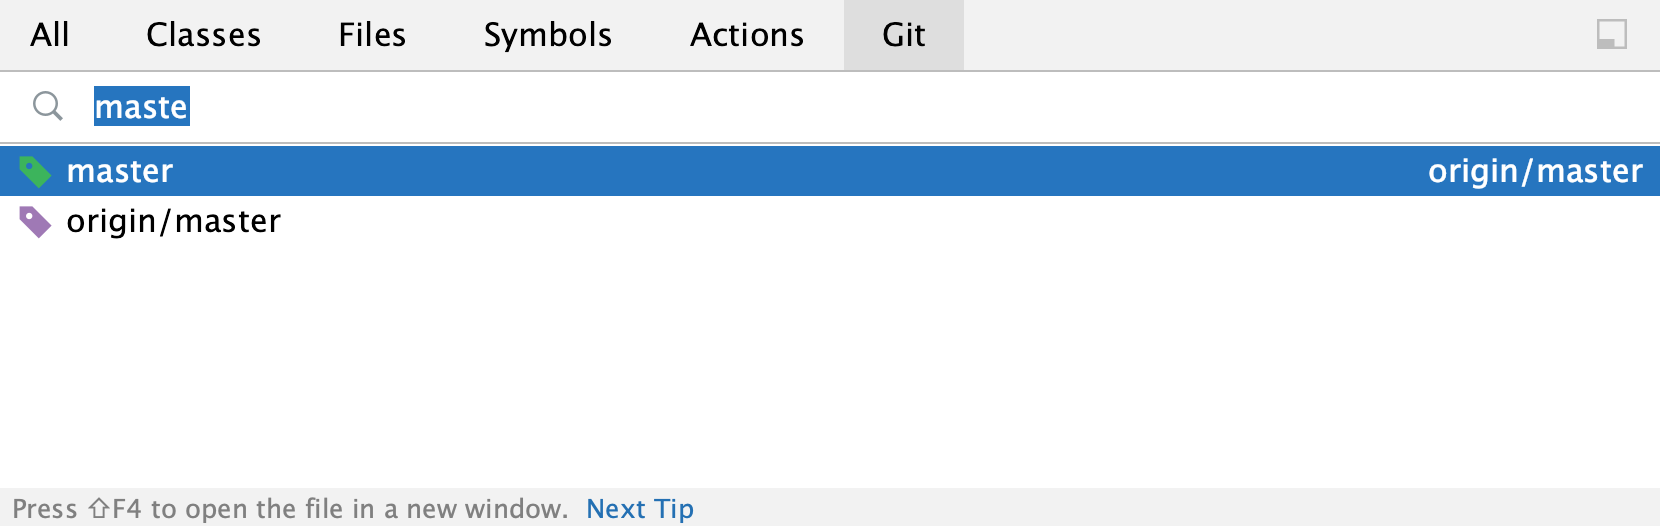 the Git search results